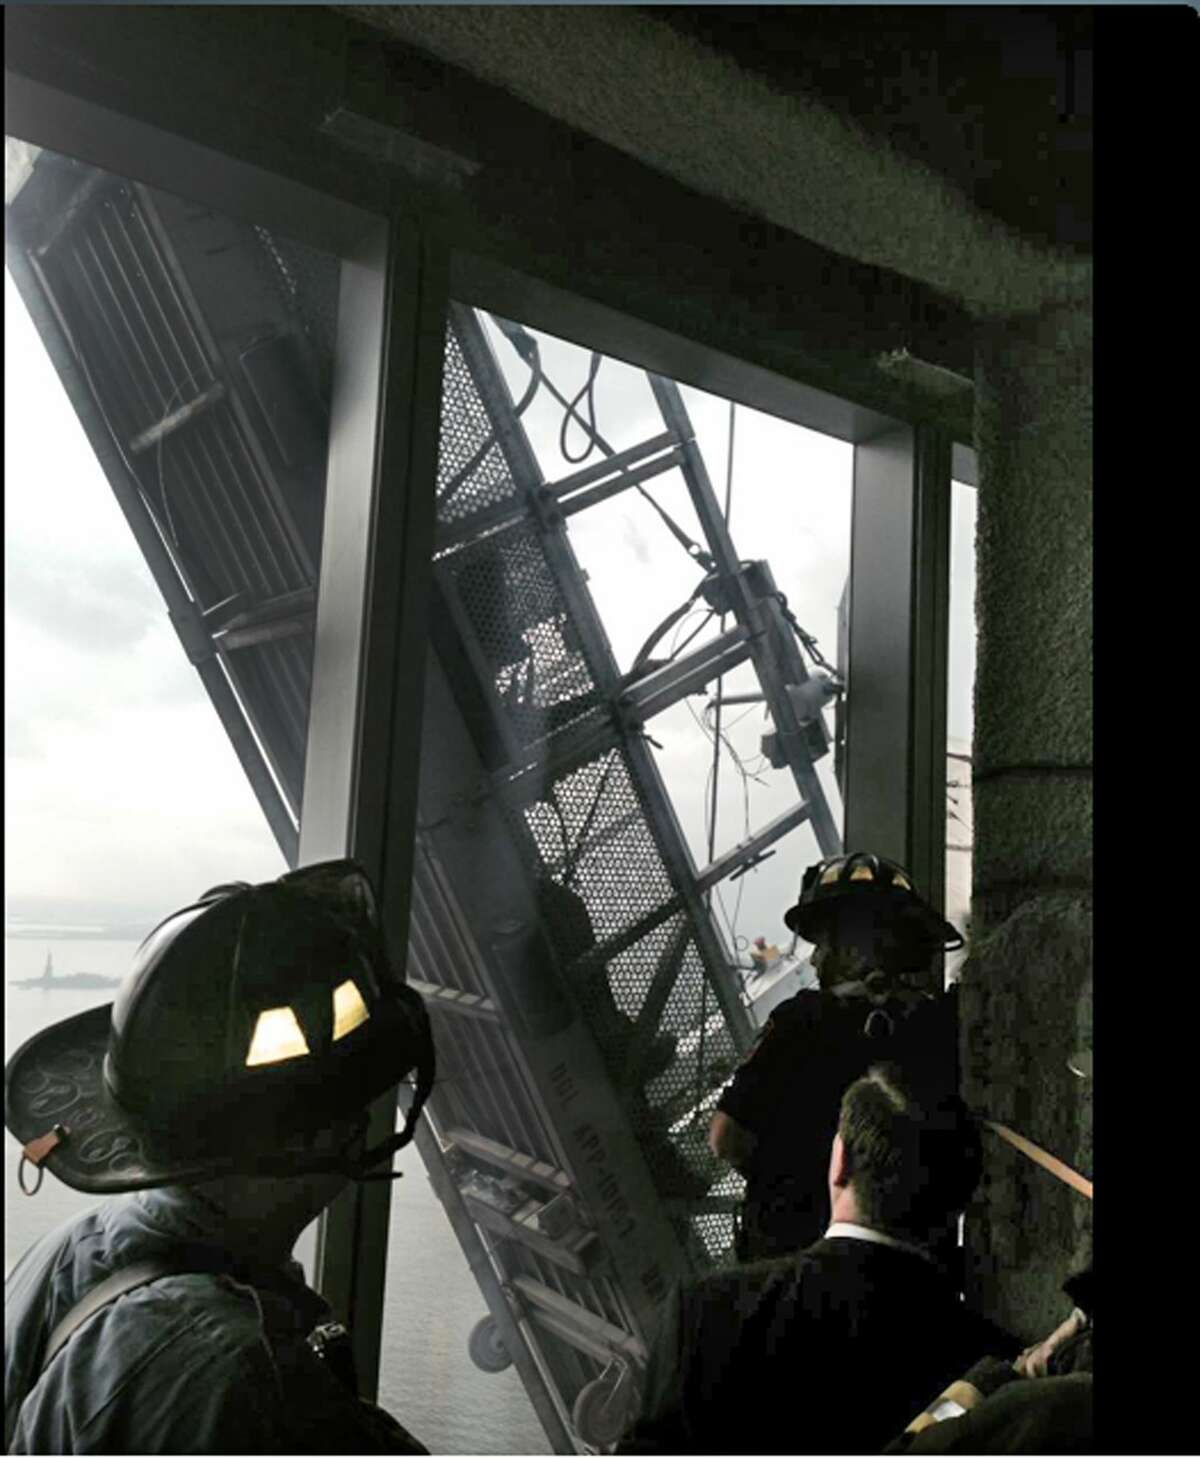 """This photo, from the Fire Dept. of New York Twitter page, shows a window washer's gondola as it hangs from 1 World Trade Center, in New York, Wednesday, Nov. 12, 2014. Two workers are stuck on scaffolding 69 stories above street level. A police official, John Miller, says the partially collapsed scaffolding is hanging at """"a 75-degree angle."""" The Fire Department said the workers are tethered and communicating with rescuers. (AP Photo/Fire Dept. of New York, Twitter)"""